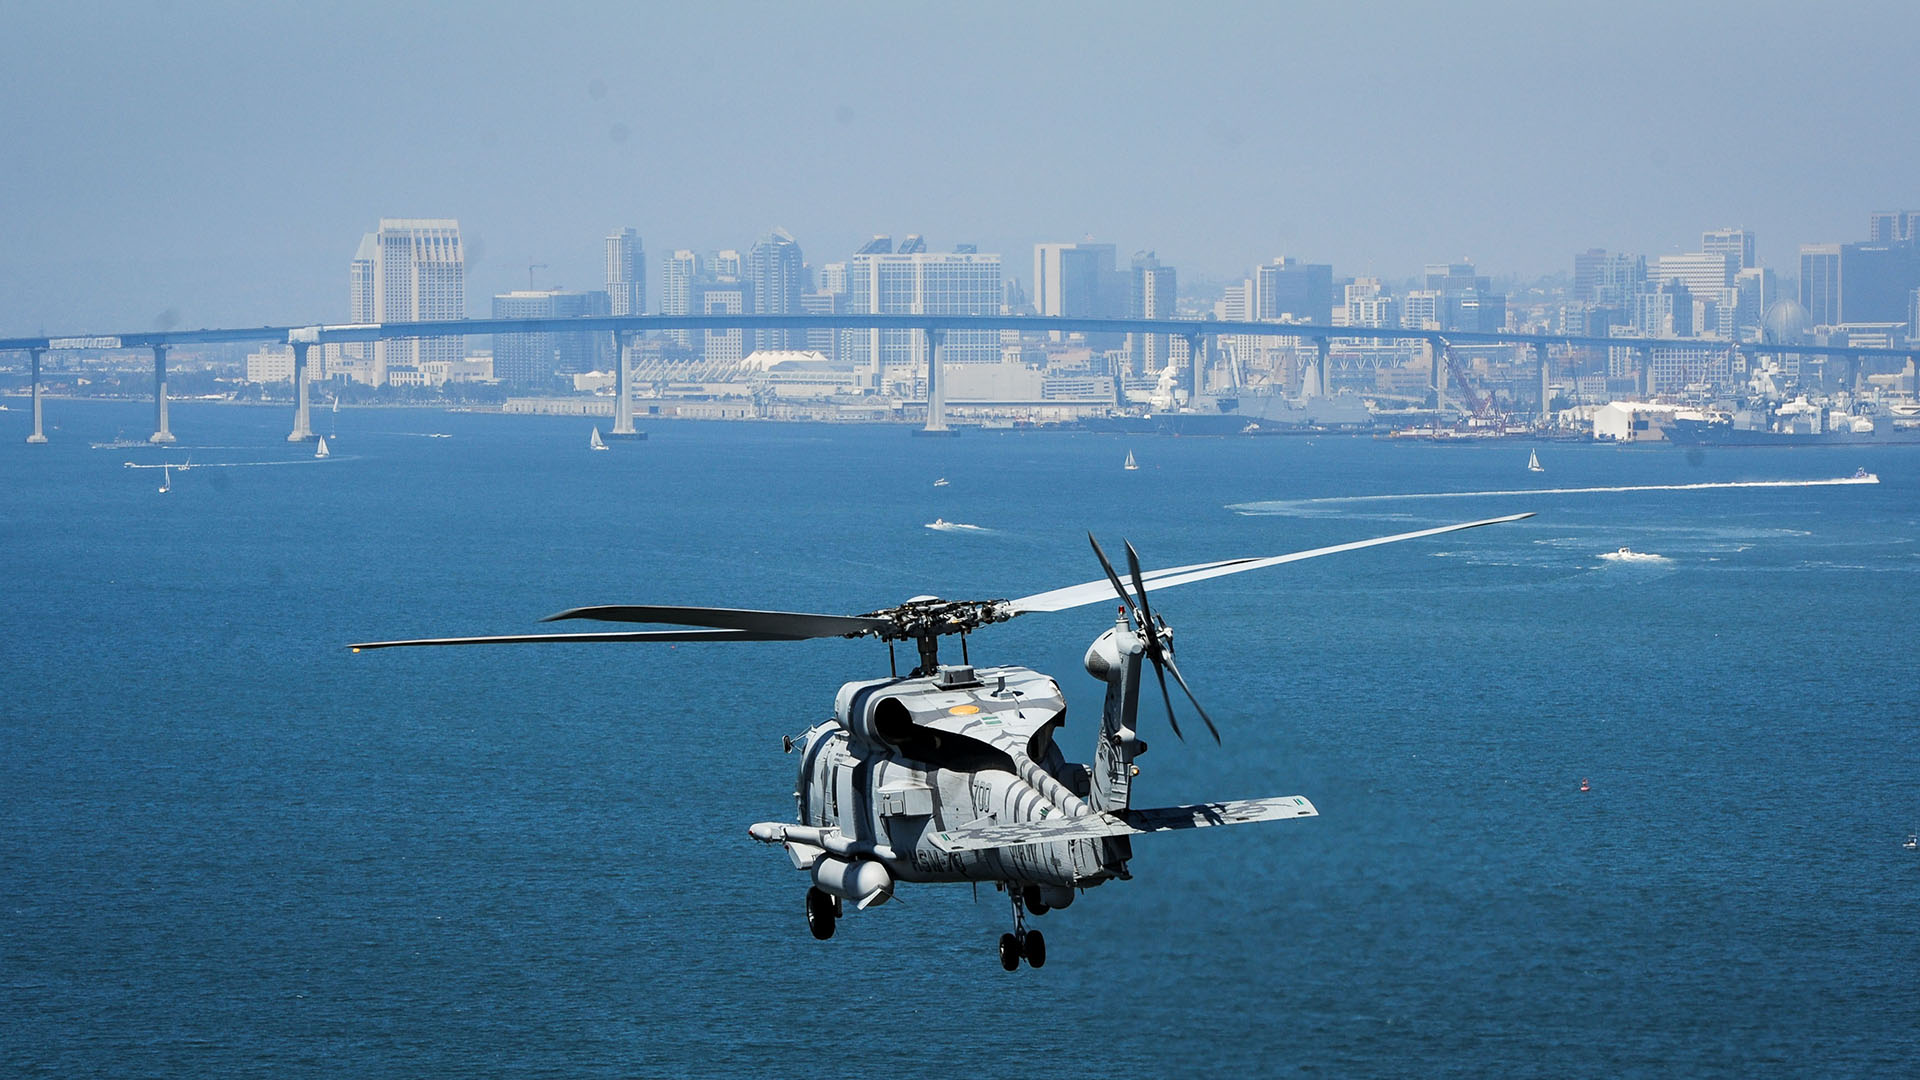 US Navy MH-60R Seahawk helicopter flies over San Diego City during daytime